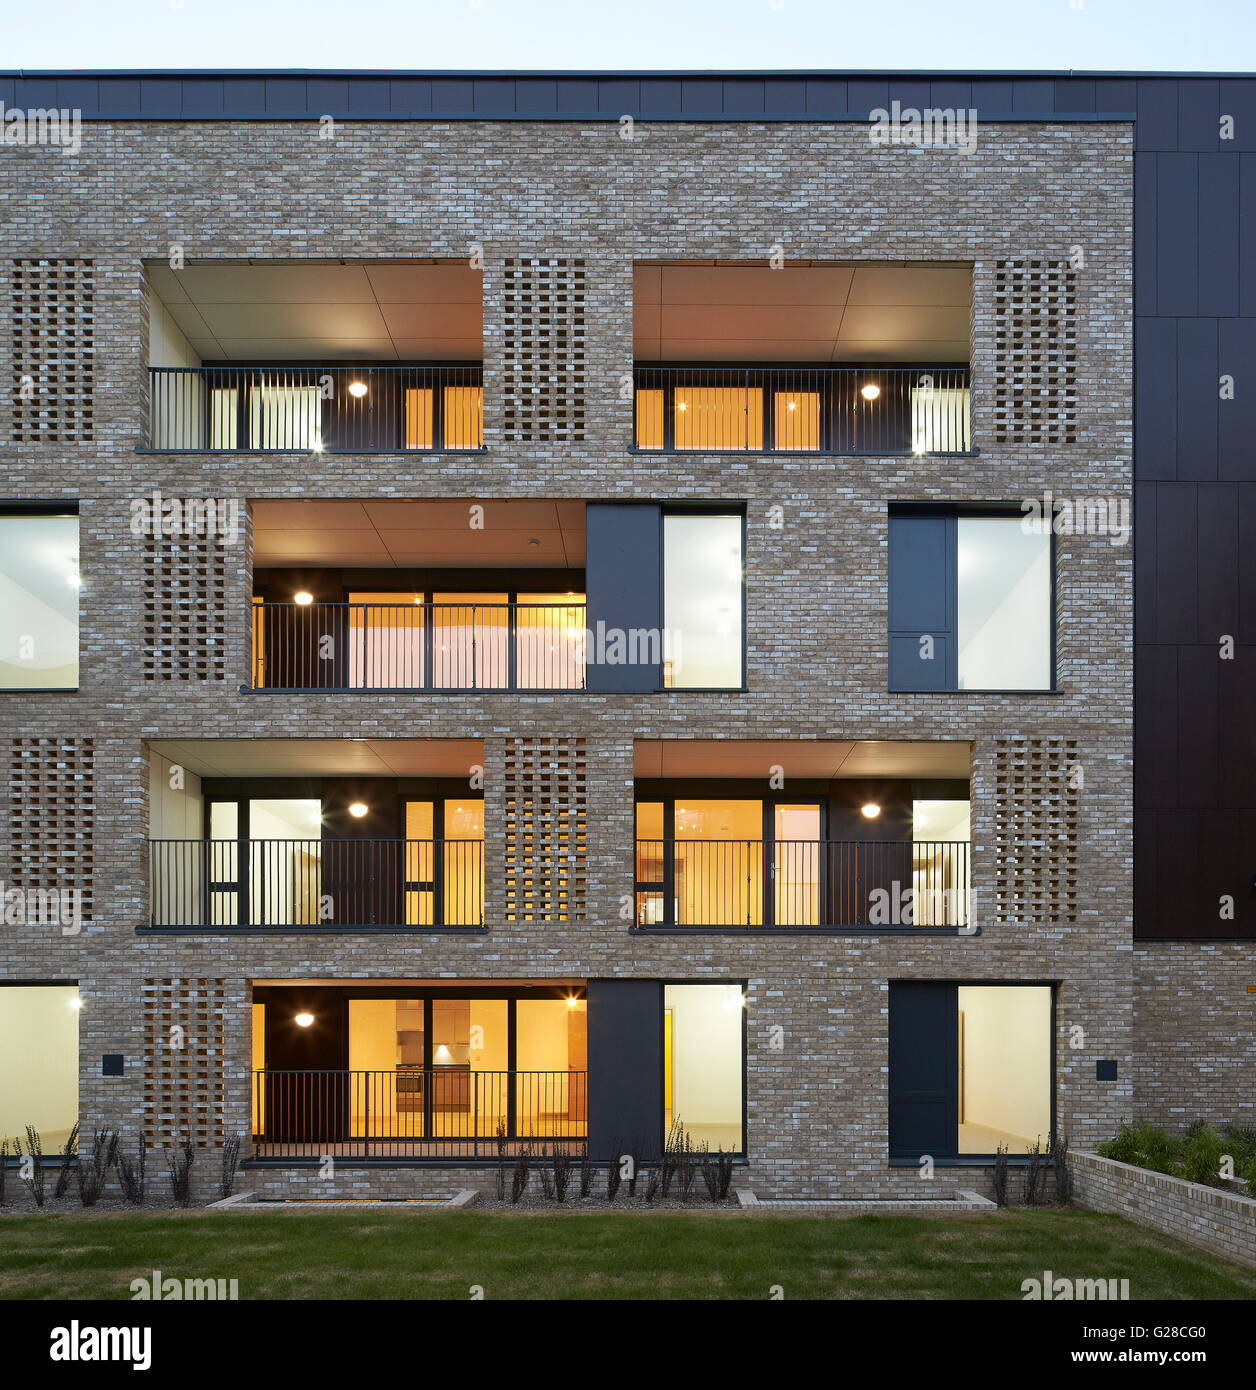 Front Elevation Red Bricks : Front facade elevation made of brick at dusk alpine place